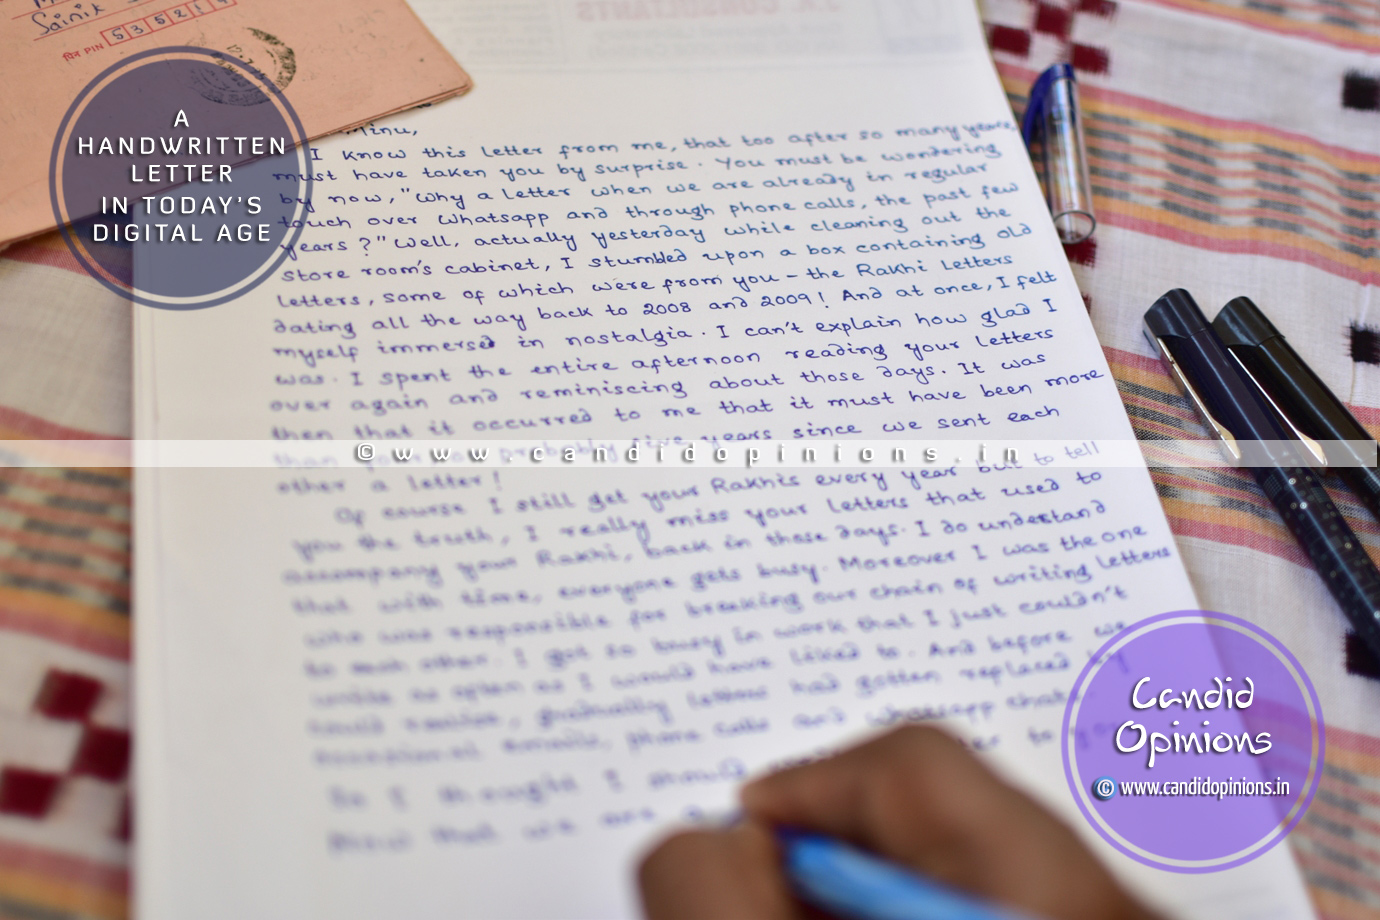 A Handwritten Letter In Today's Digital Age